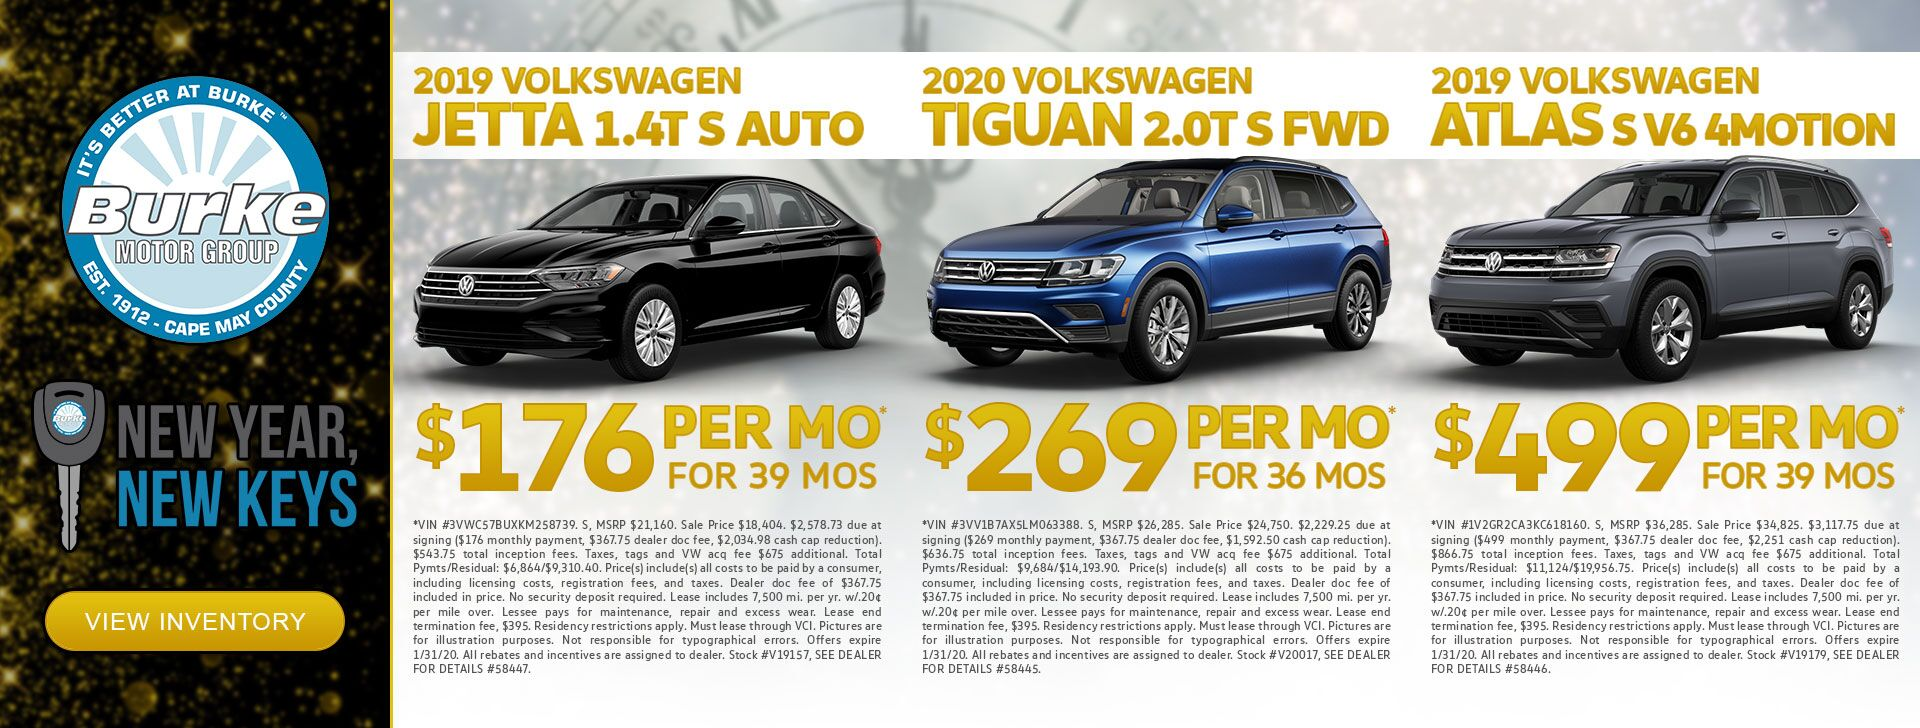 jetta-tiguan-atlas-JAN